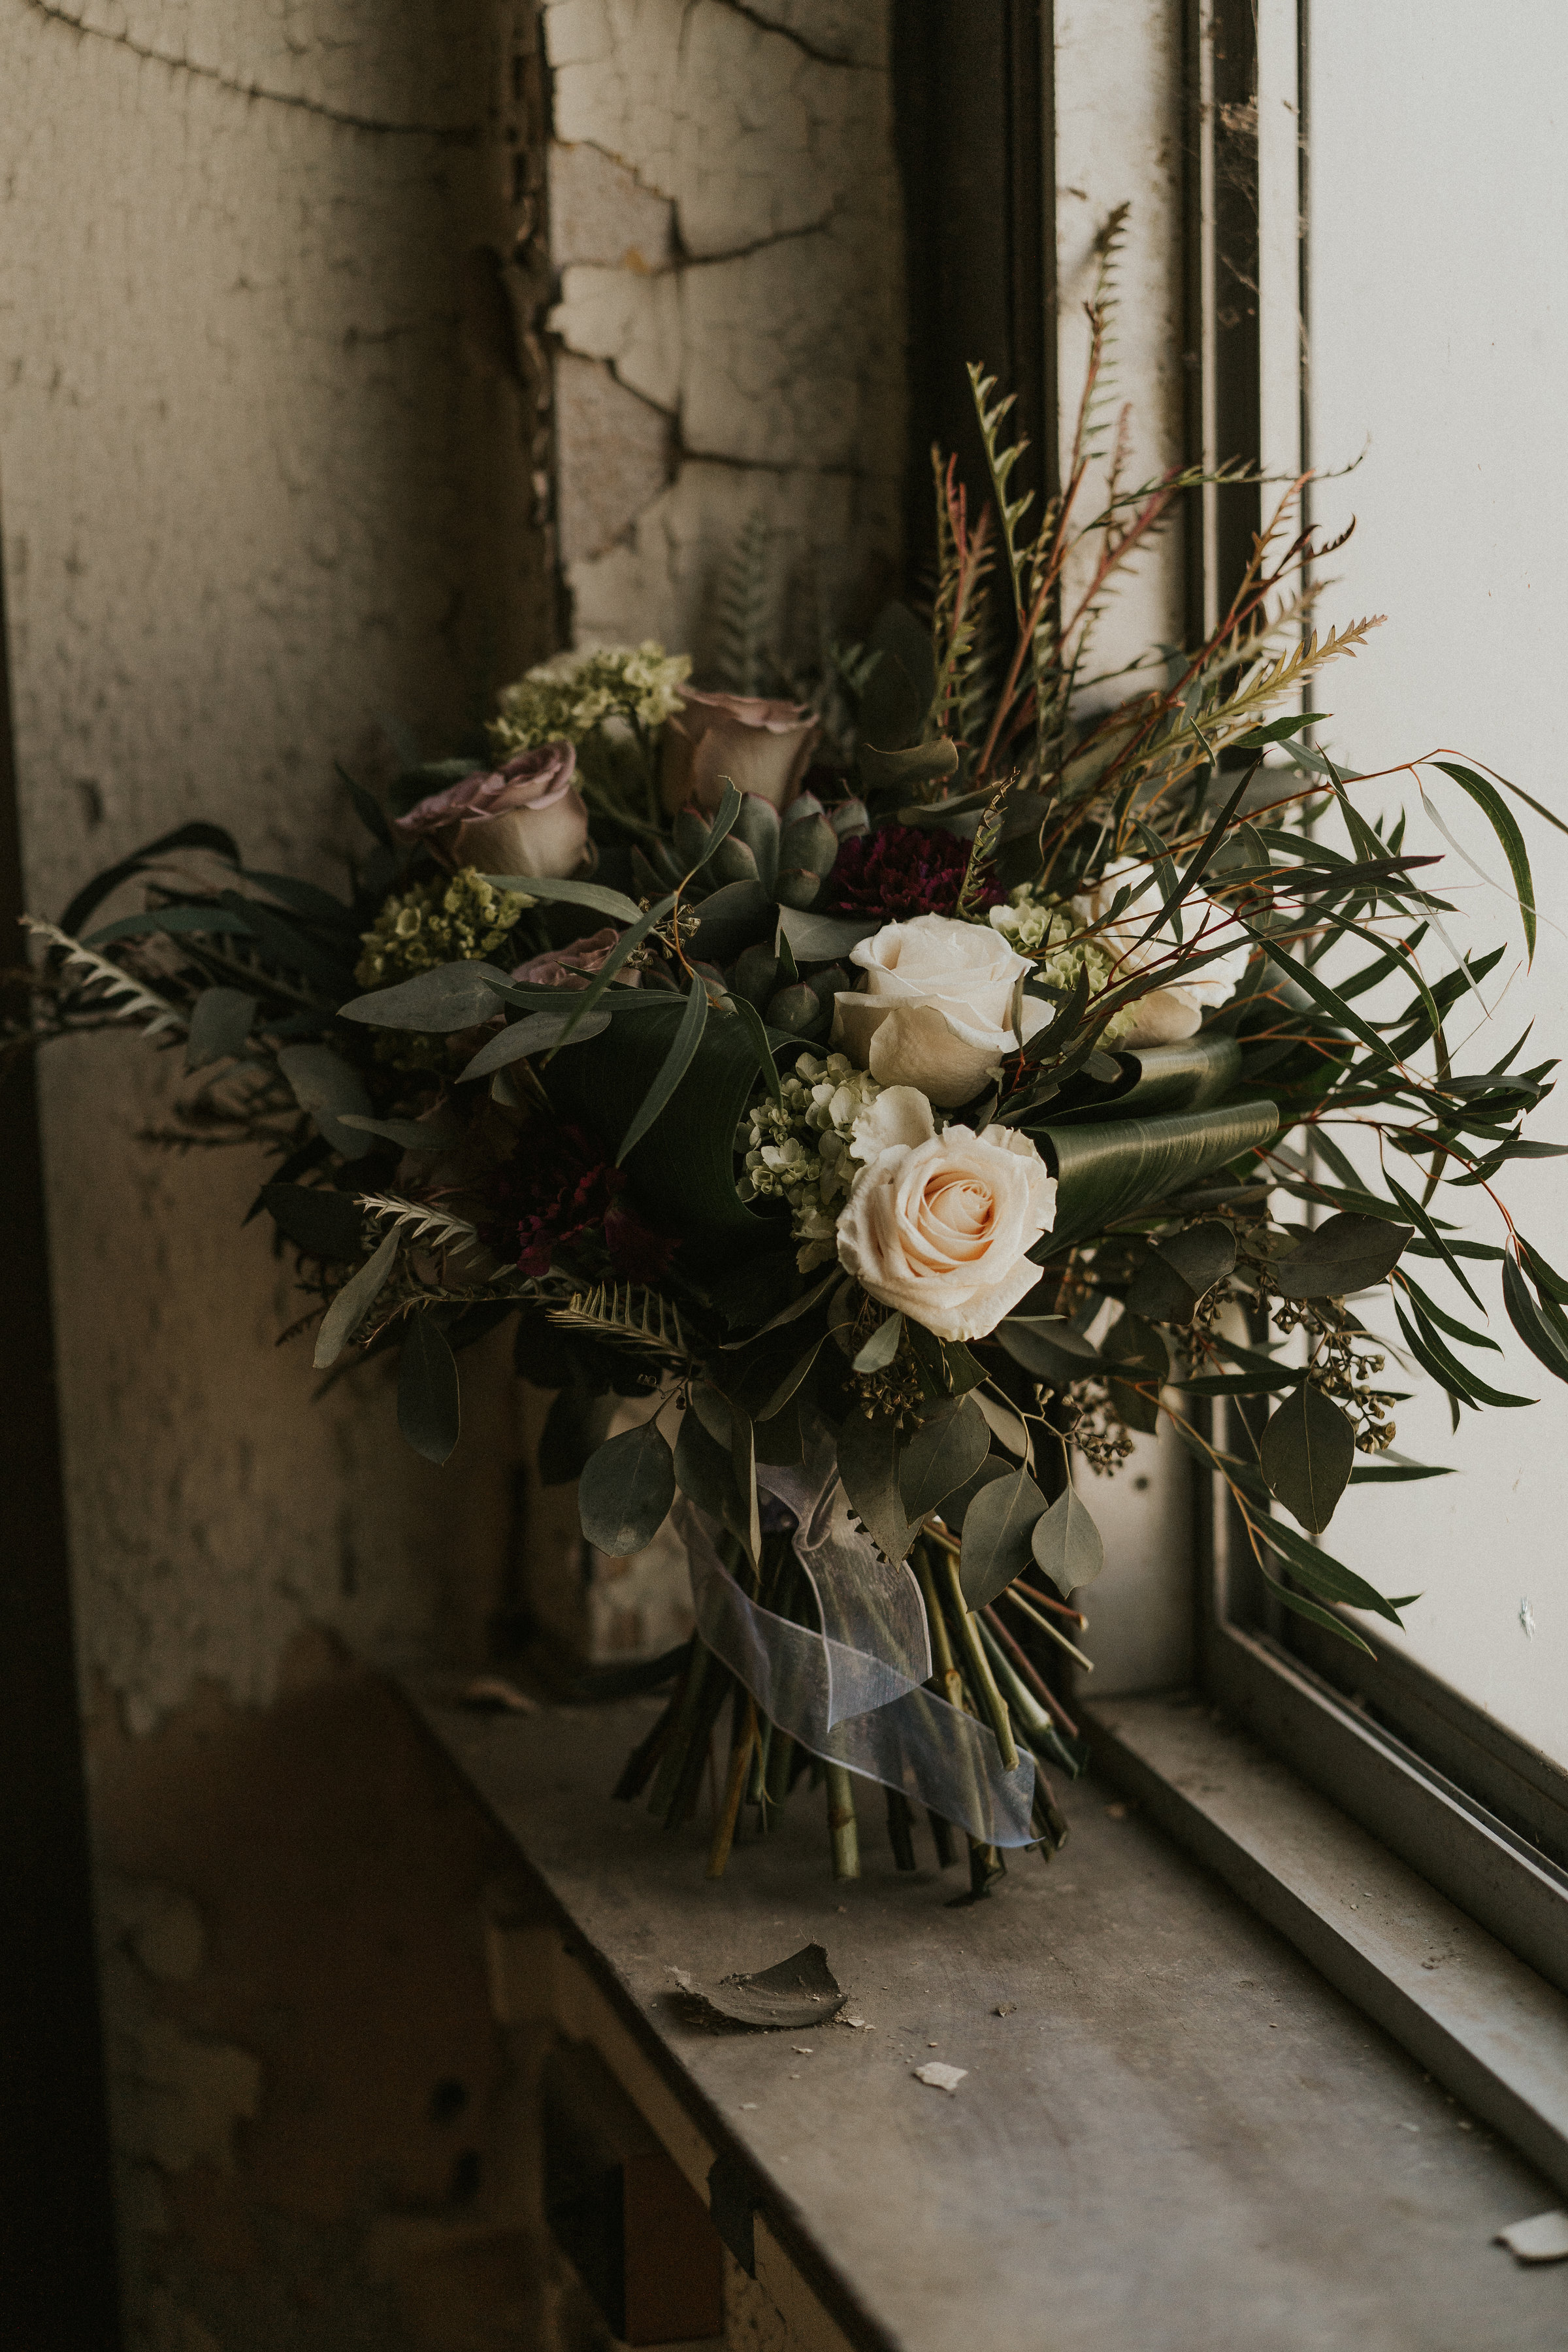 burlington-iowa-gothic-wedding-elopement-raelyn-ramey-photography-26.jpg